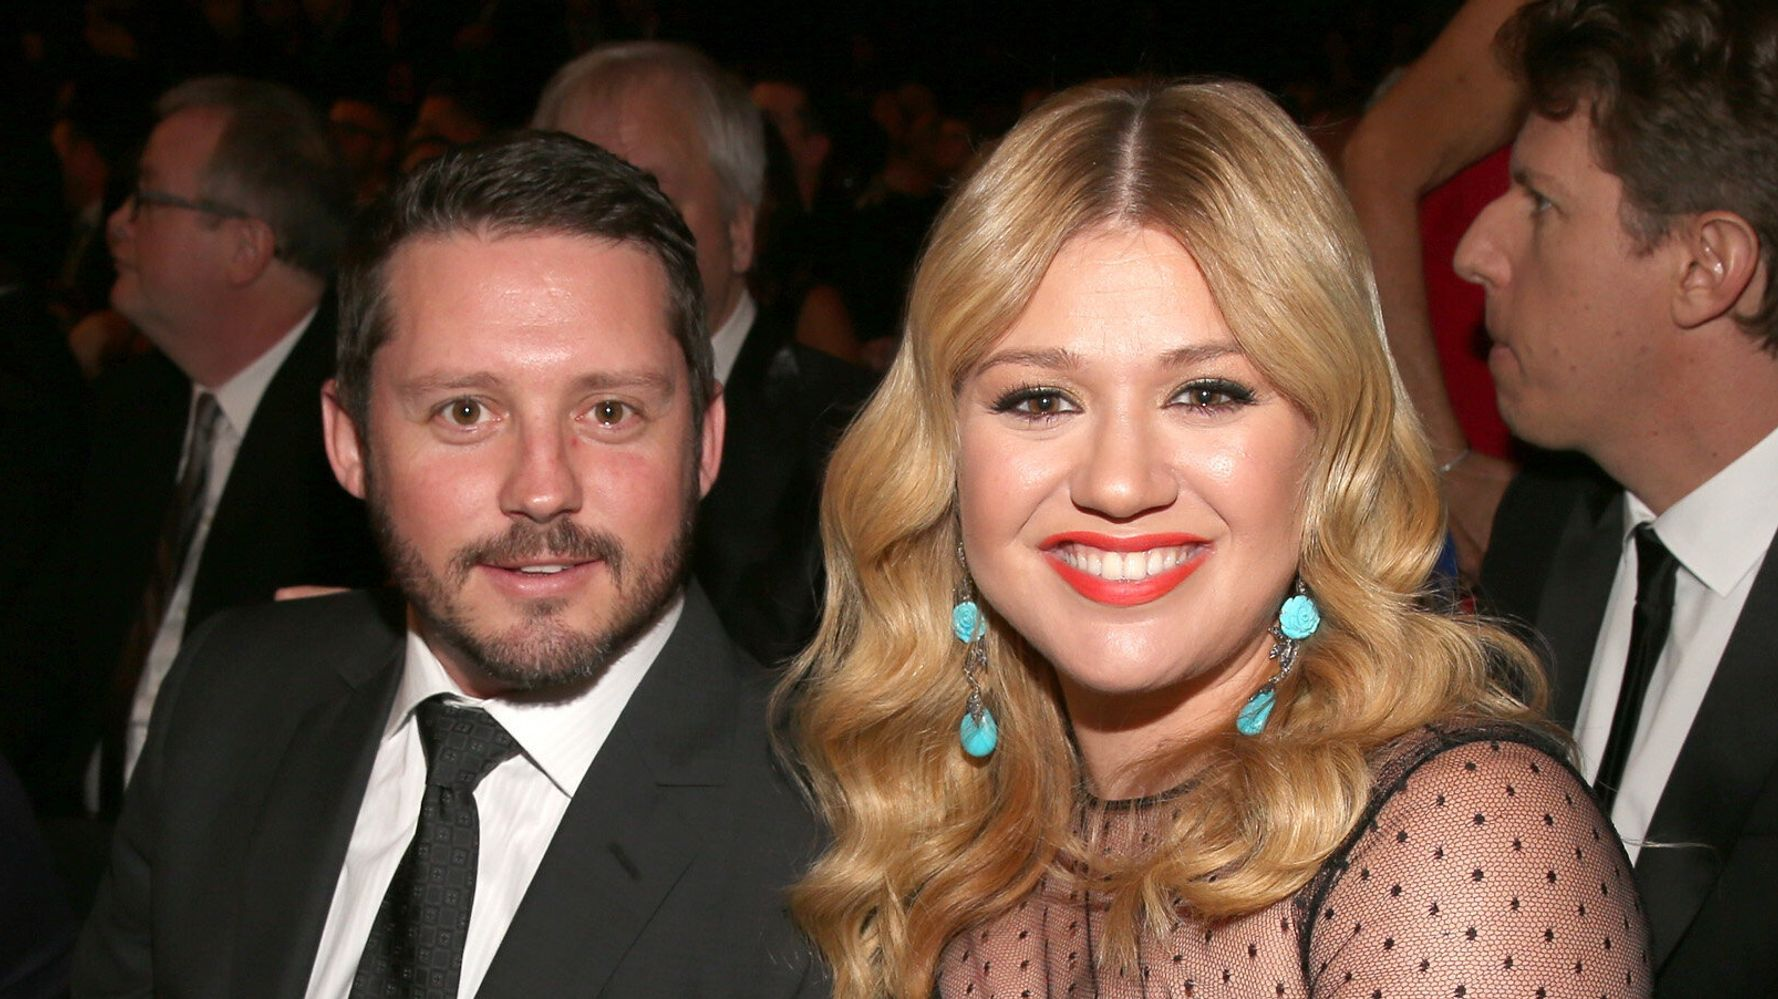 Kelly Clarkson Opens Up About The Hardest Part Of 'Horrible' Divorce